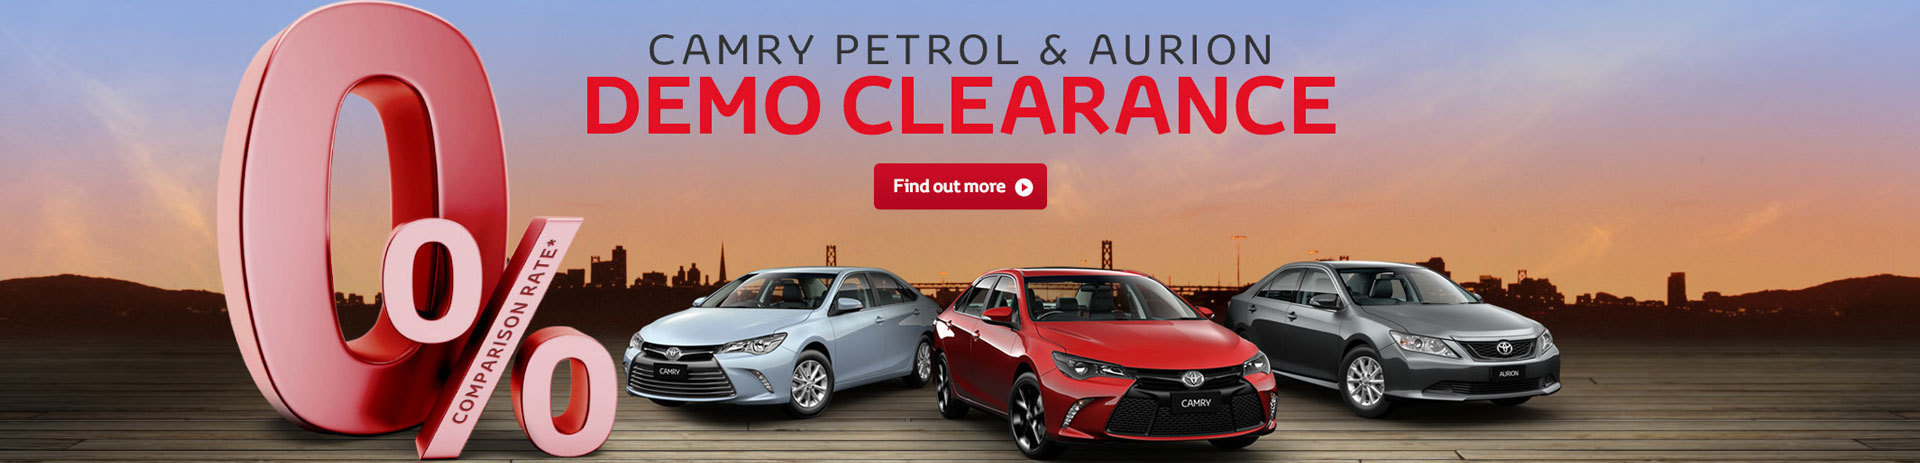 Camry Petrol & Aurion Demo Clearance 0% Comparison Rate